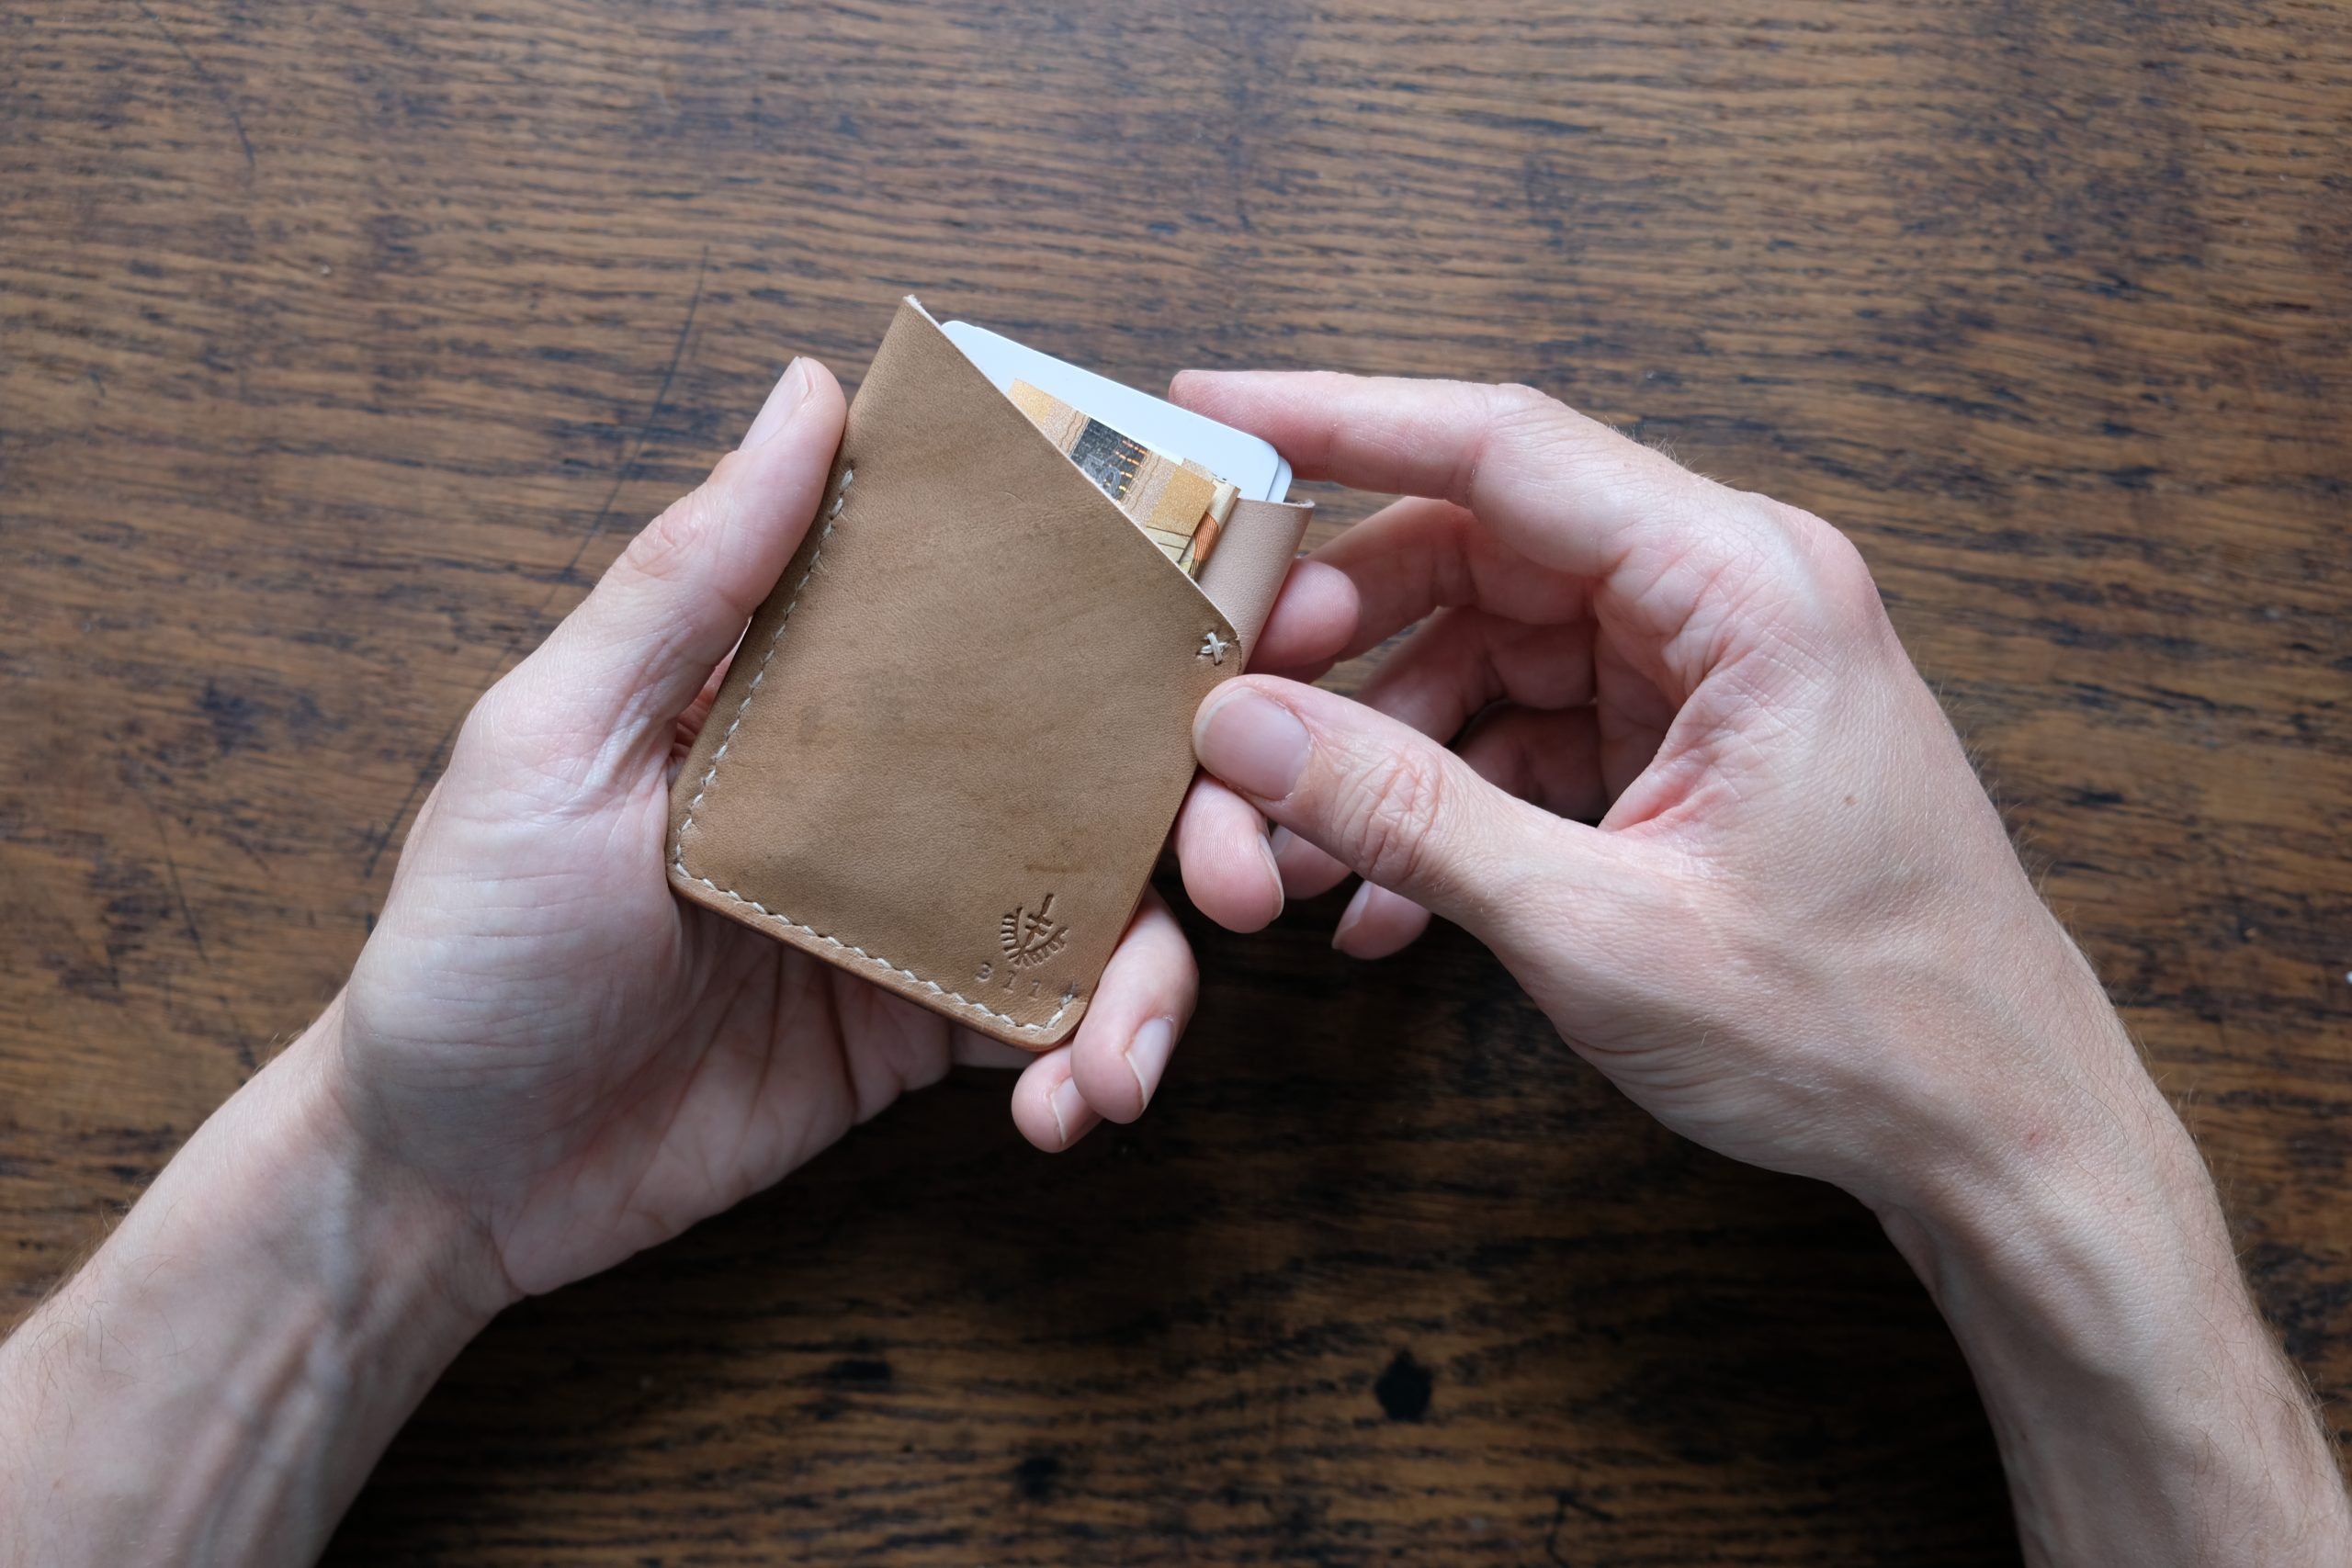 hands holding lerif designs leather fox ears cardholder in walnut and natural on wood background